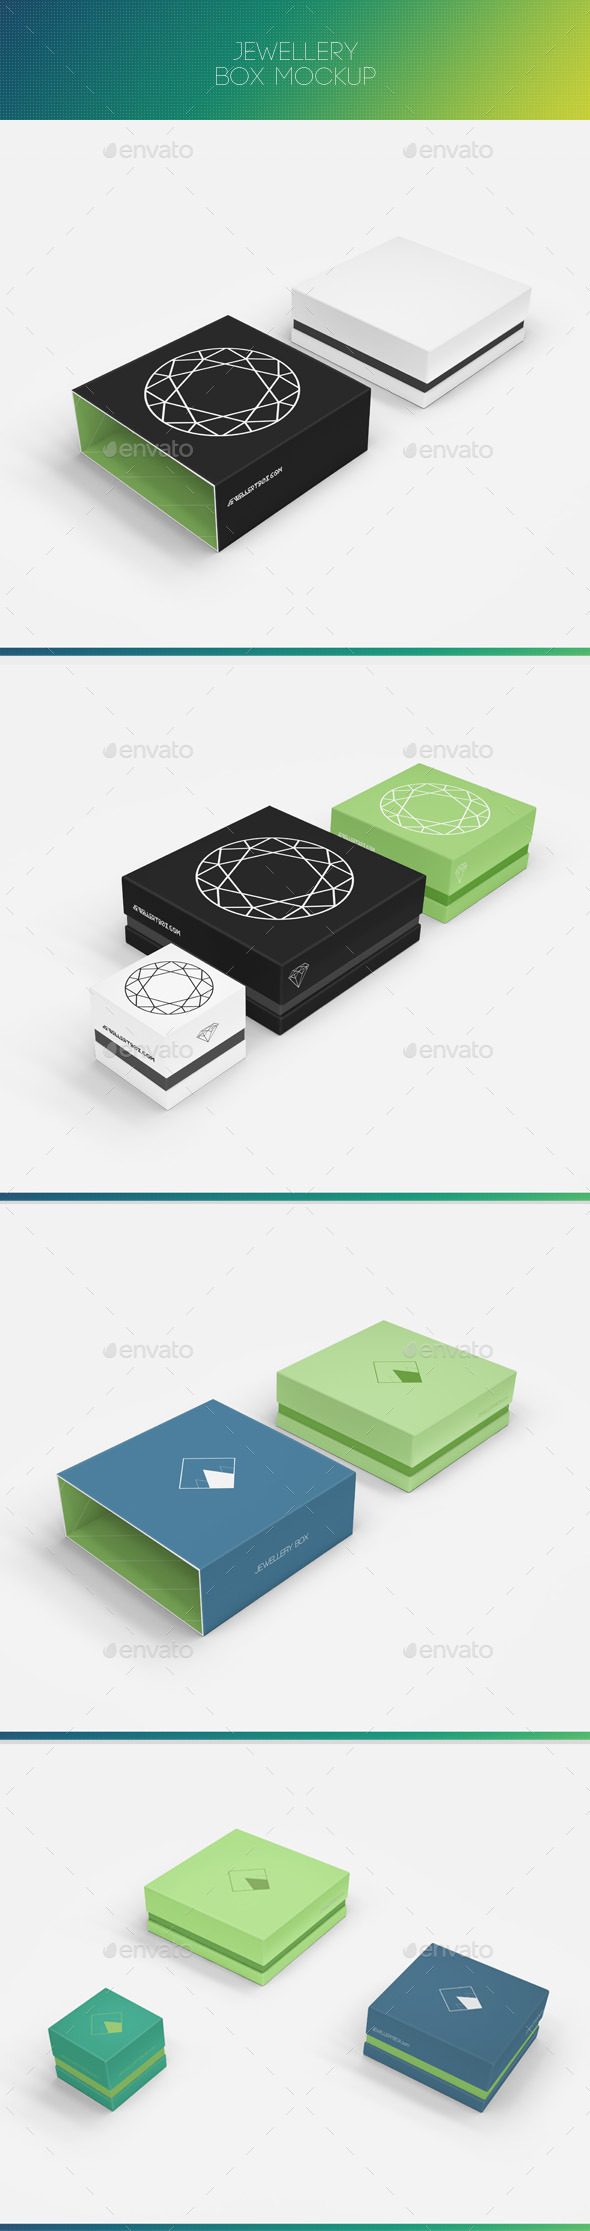 Download Jewellery Box Mock Up Boxmockup Download Http Graphicriver Net Item Jewellery Box Moc Box Packaging Design Graphic Design Mockup Free Photoshop Mockups